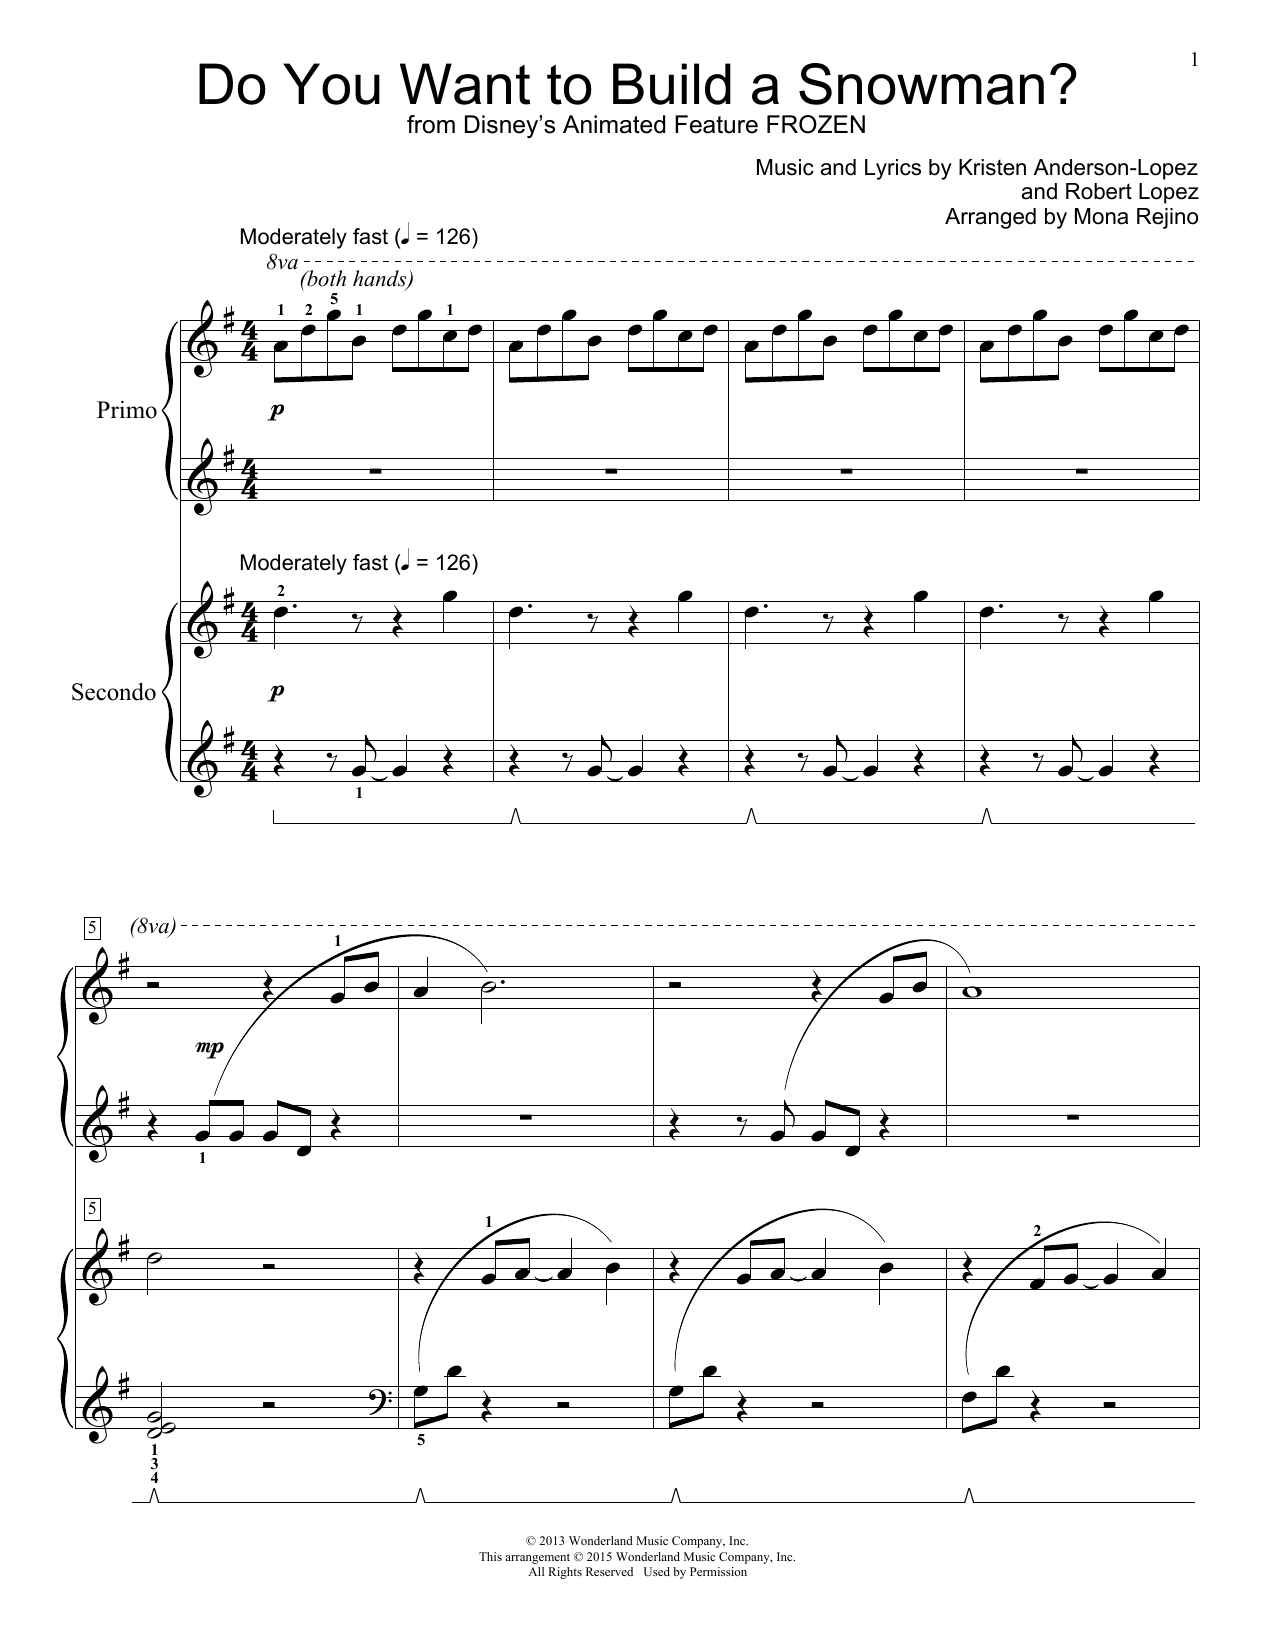 Do You Want To Build A Snowman? | Sheet Music Direct